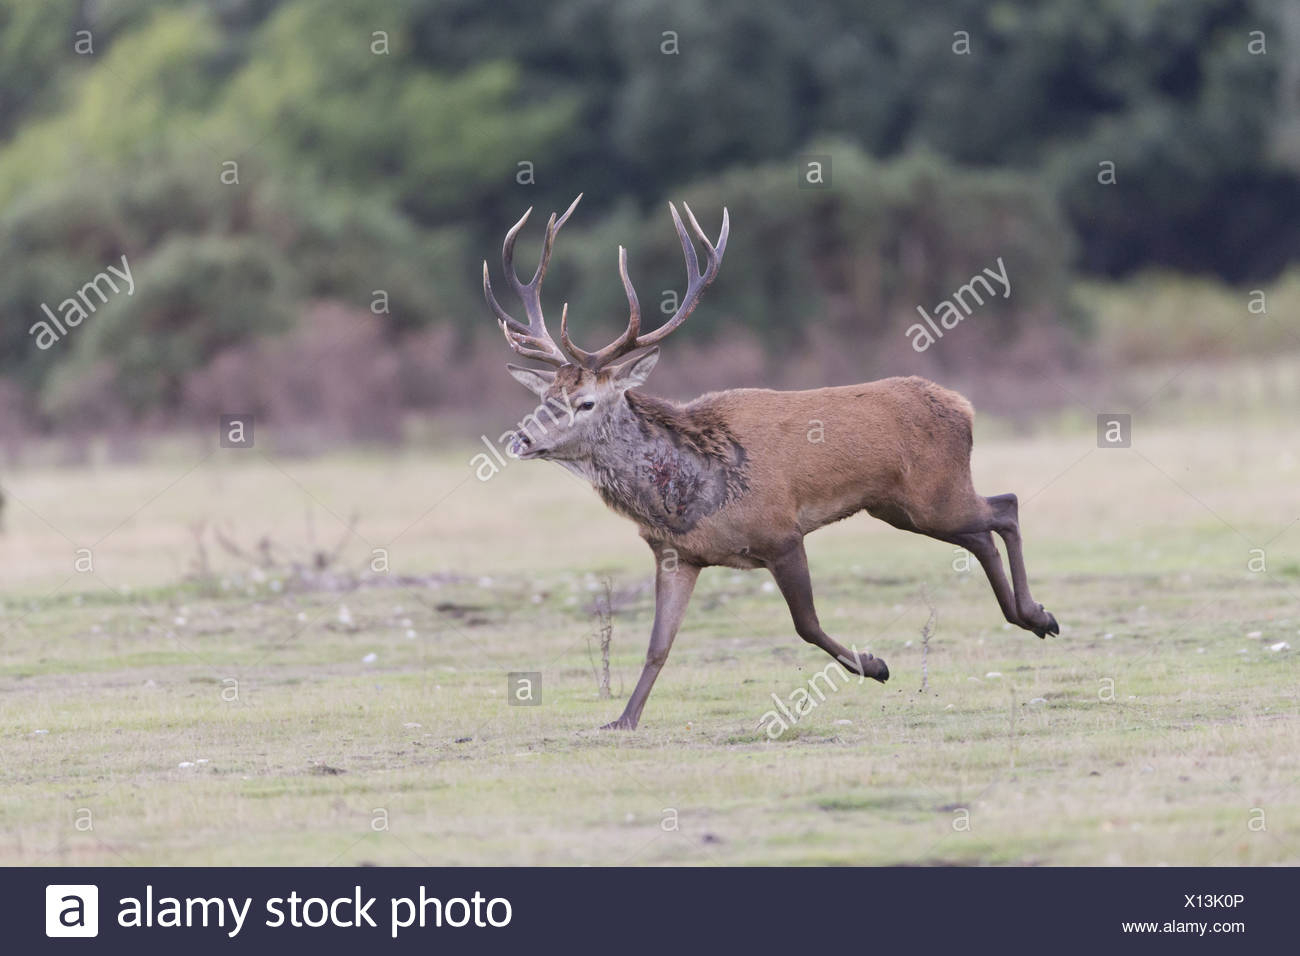 Red Deer Rut Minsmere High Resolution Stock Photography And with Deer Rut Westleton 2021